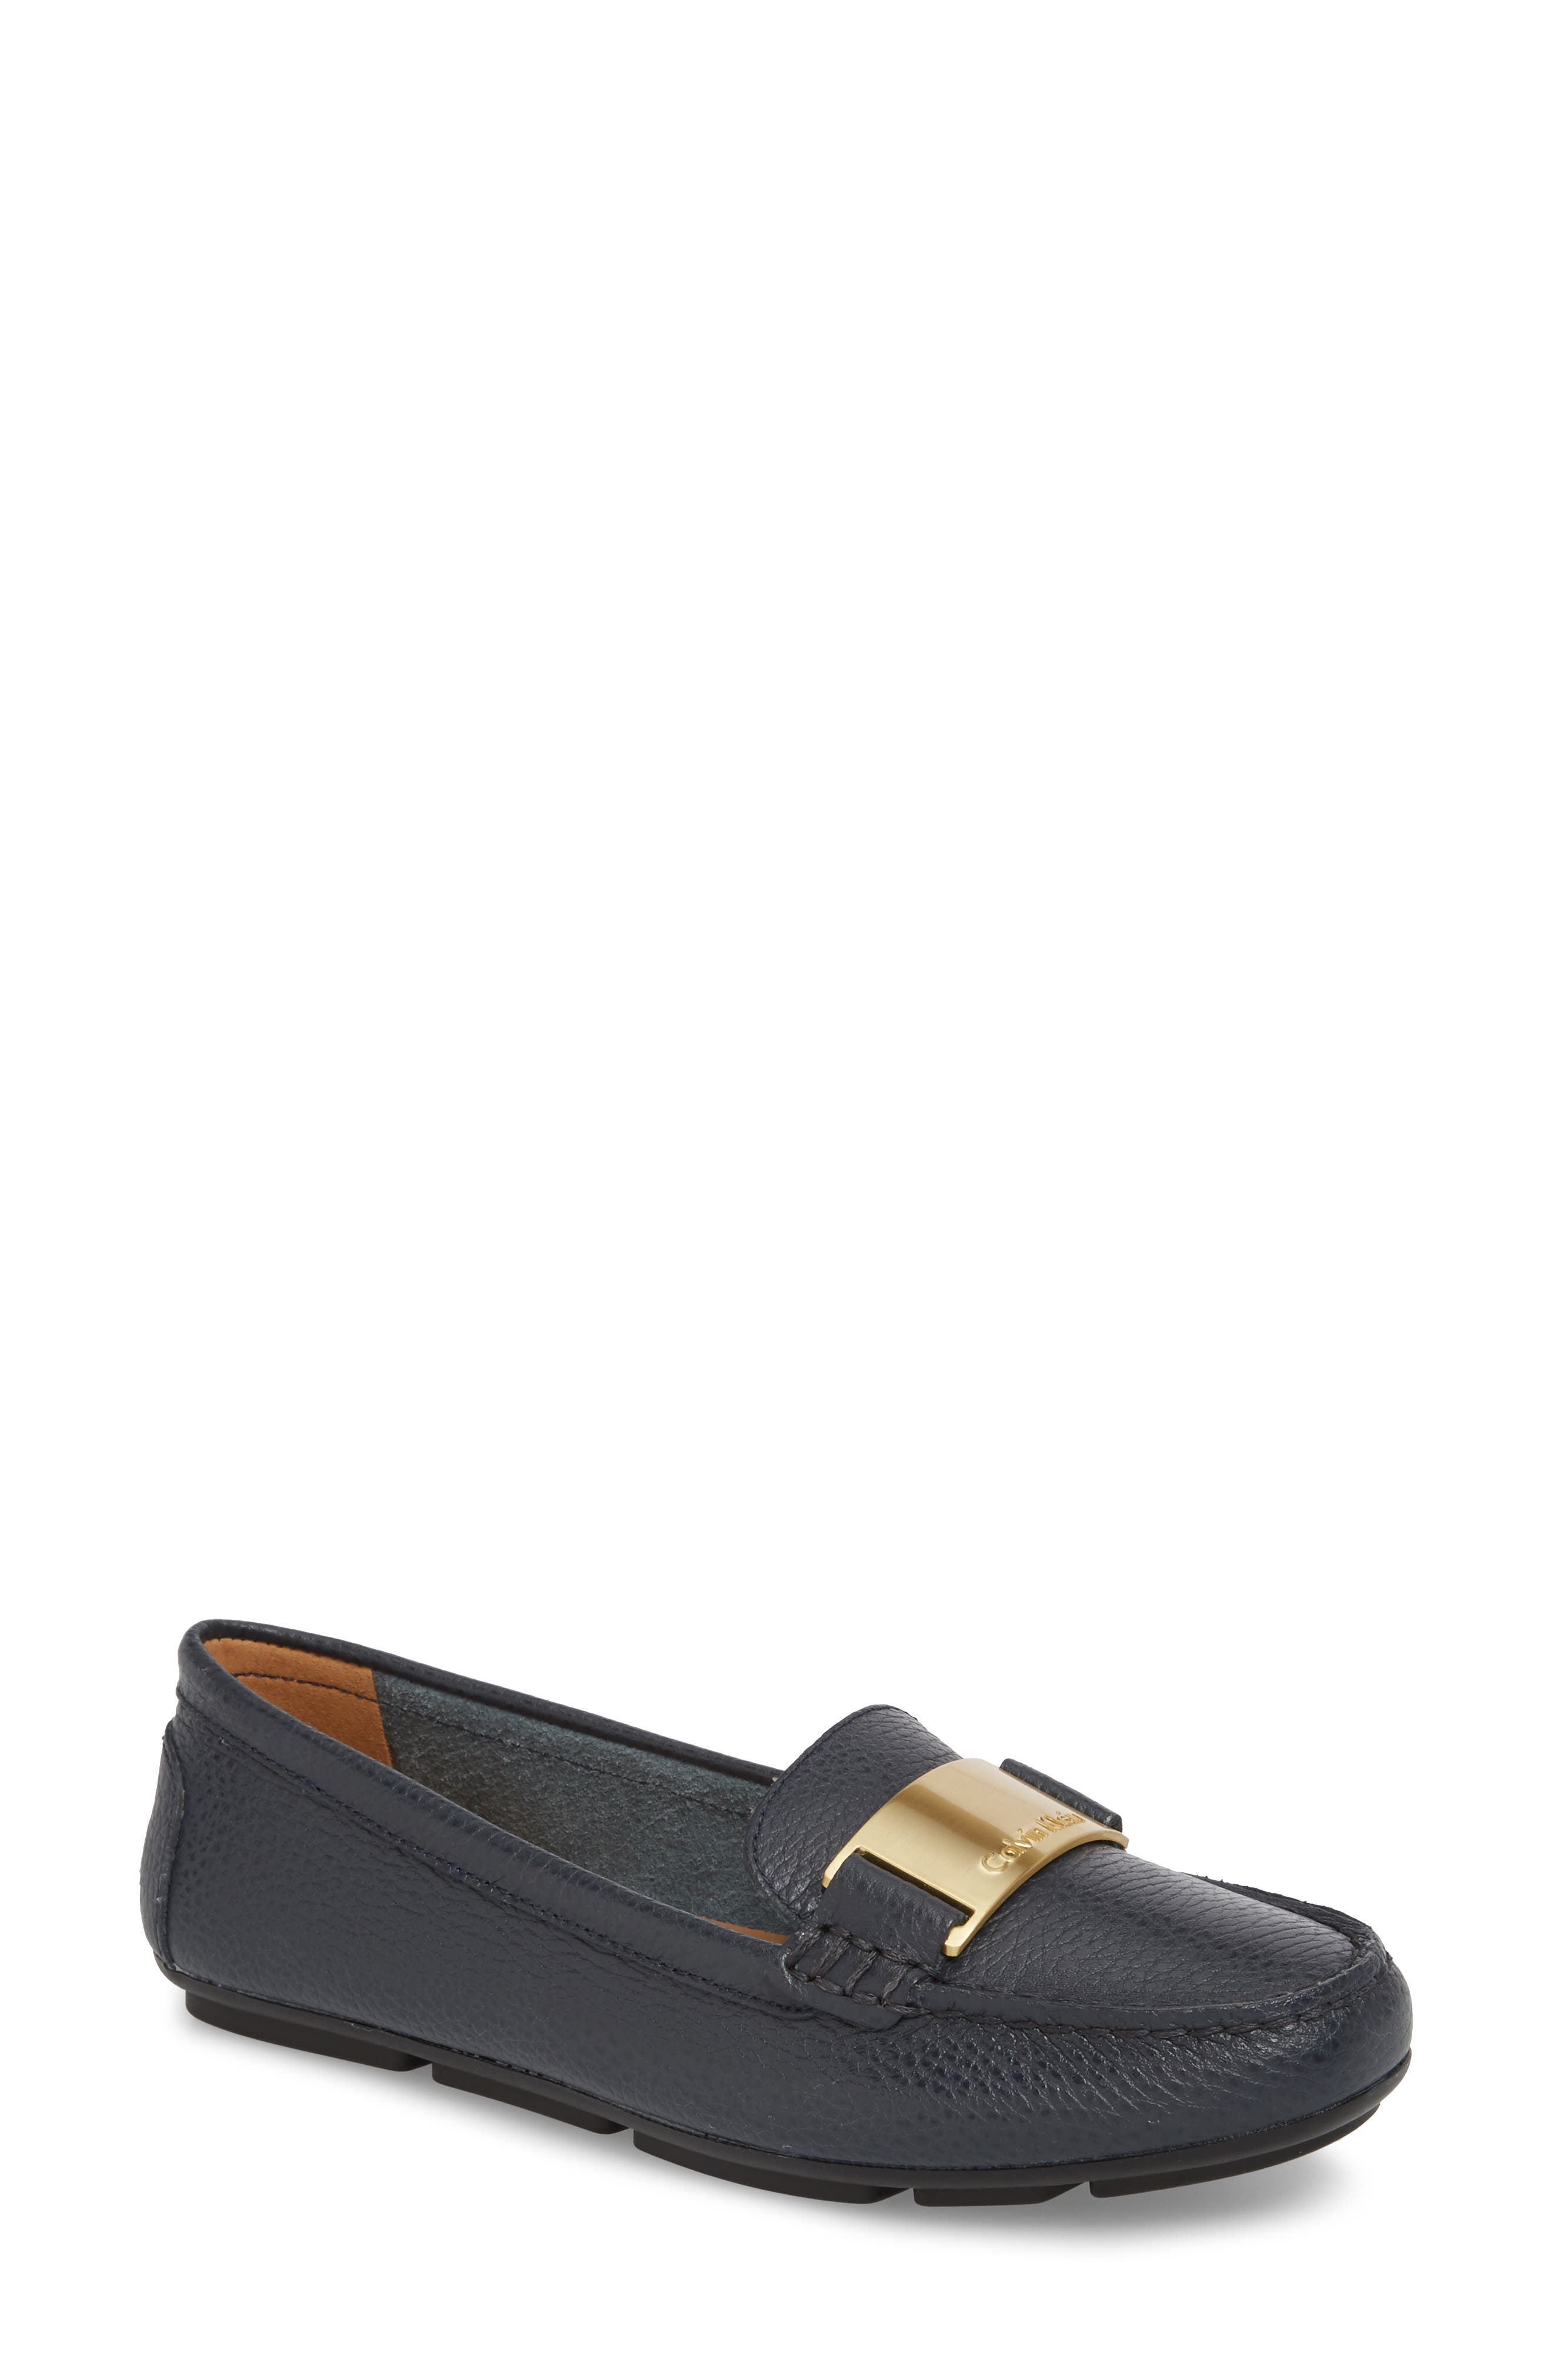 Lisette Loafer,                         Main,                         color, Deep Navy Leather